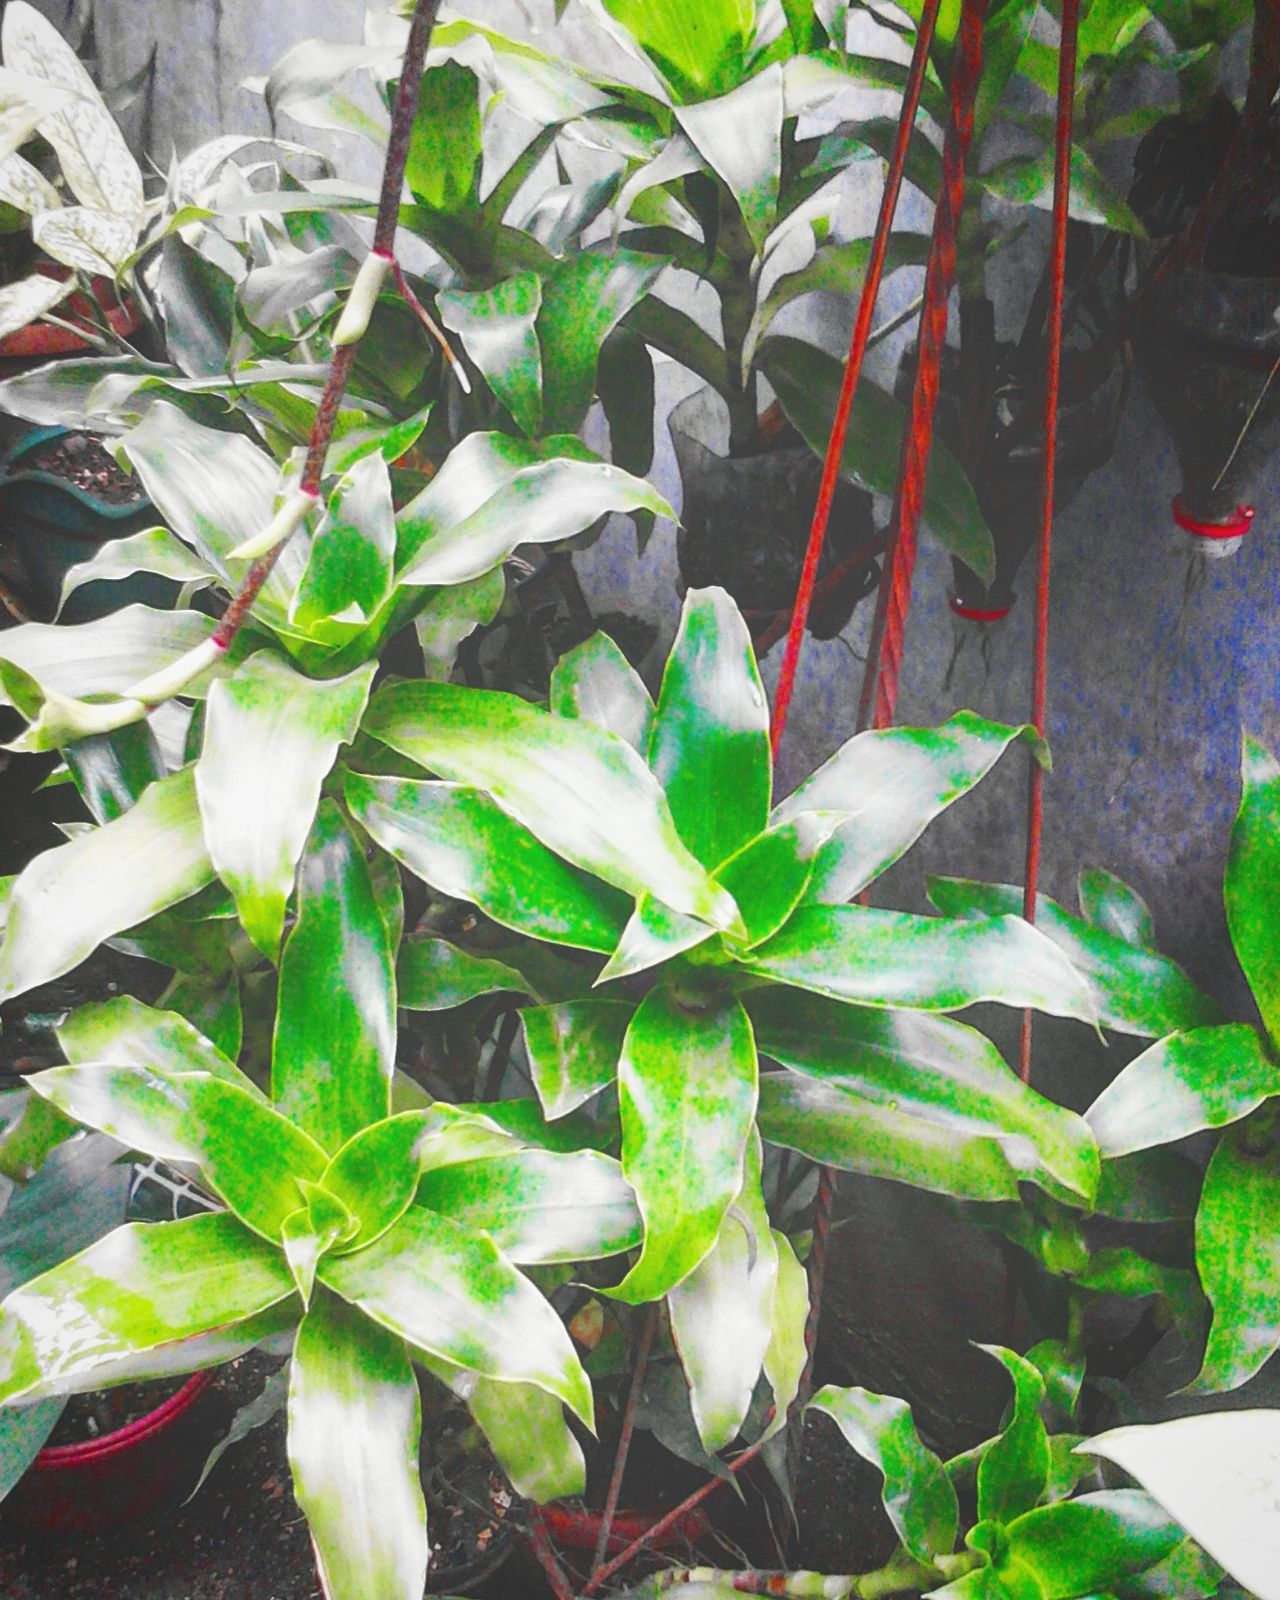 Leaf Growth Plant Nature Green Color Close-up No People Day Outdoors Beauty In Nature Freshness